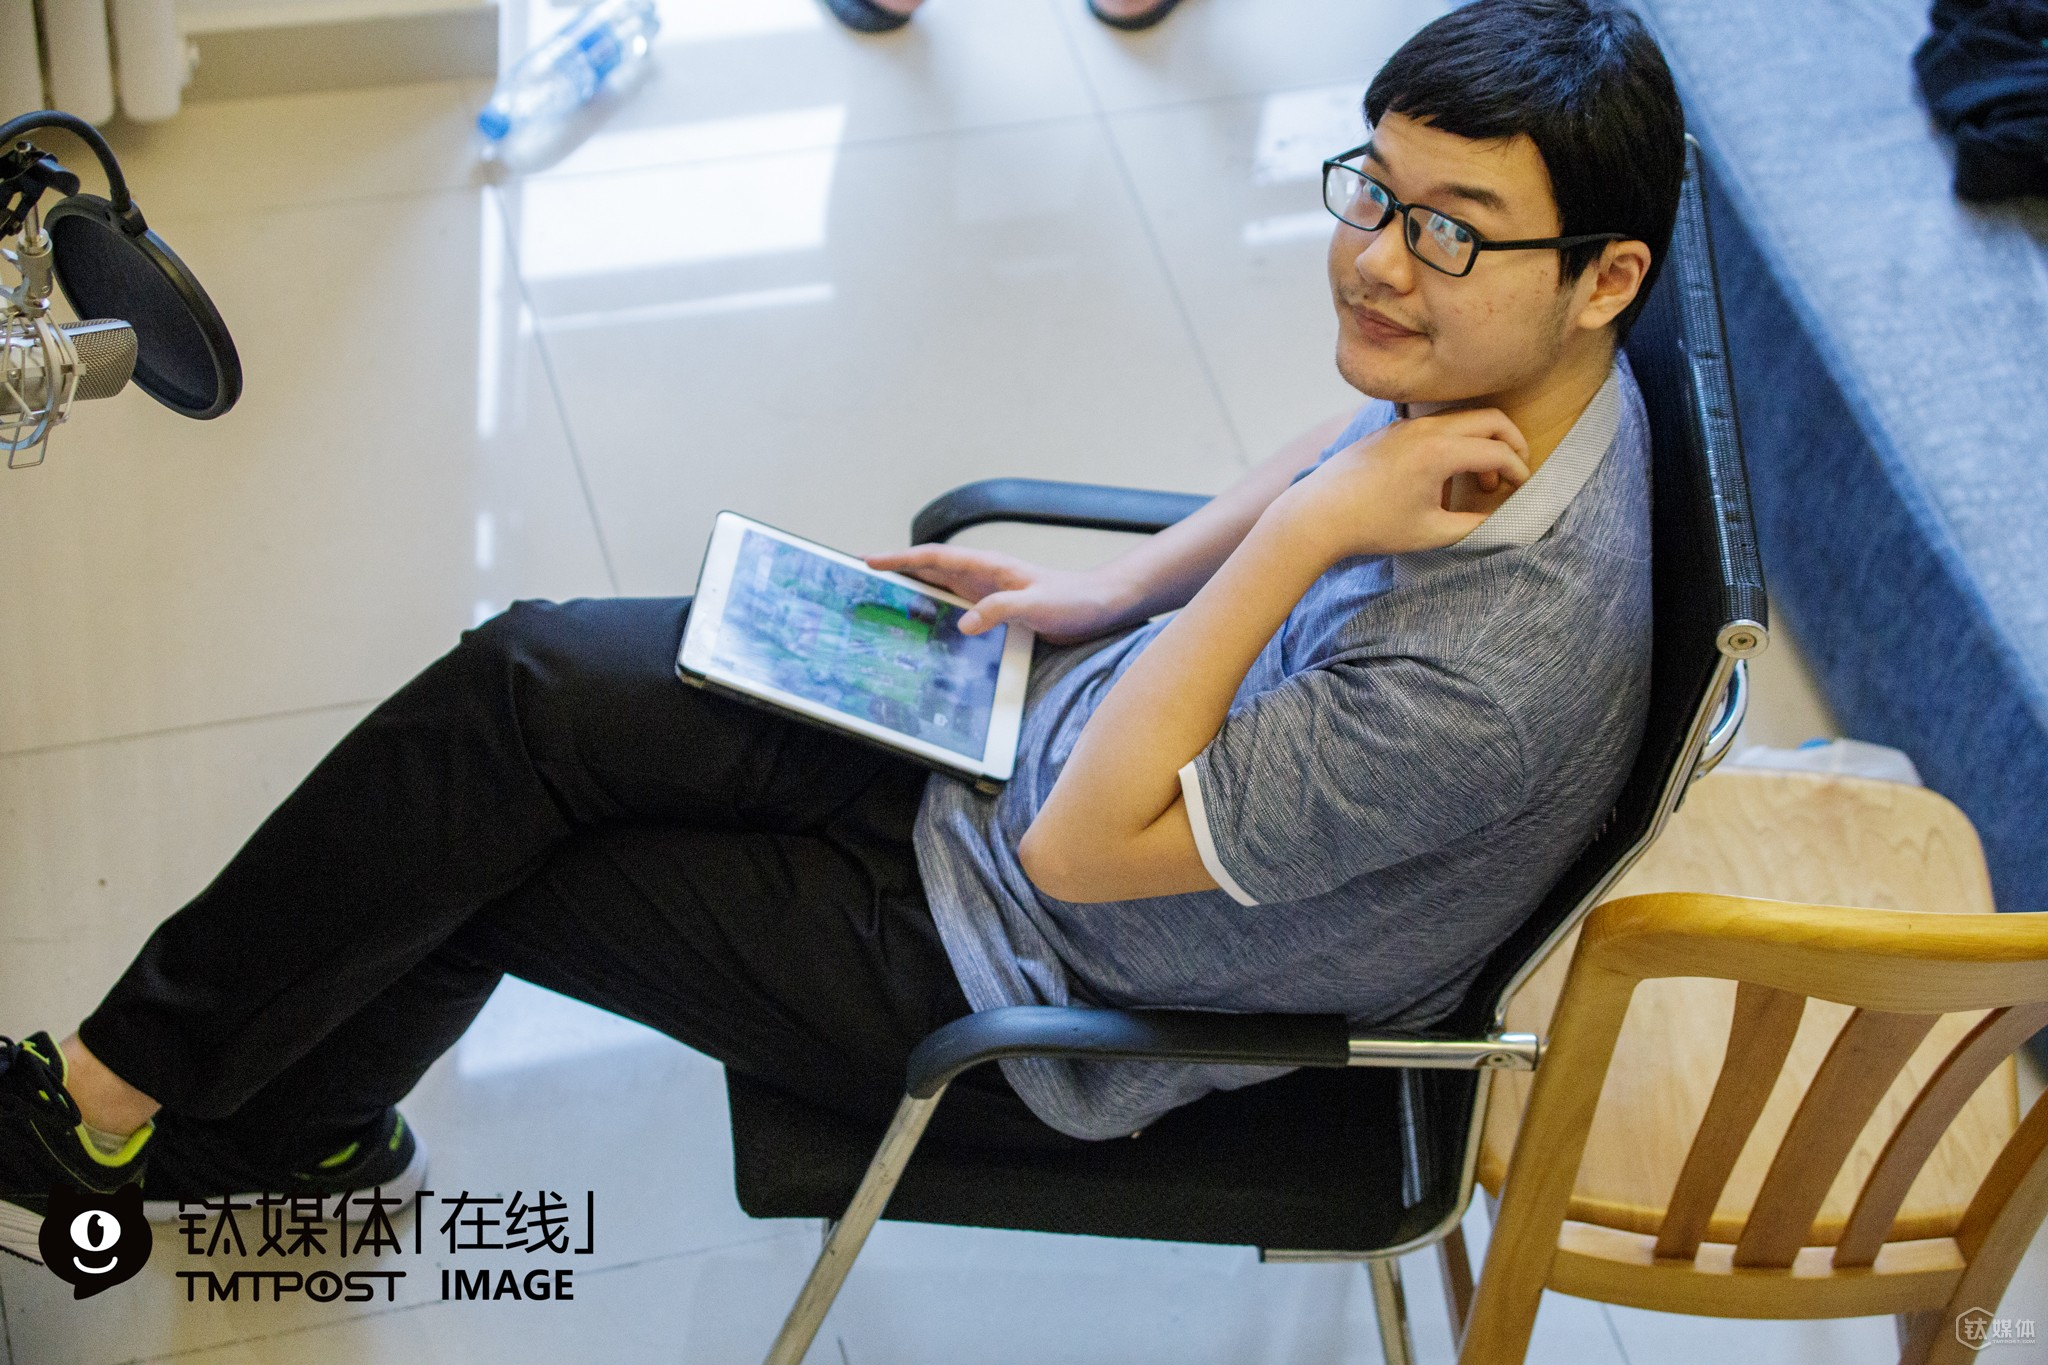 "Xiaoyang is the only player in the team who's born in the 19080s. ""I am already 26 years old, so I'm already quite old in the circle,"" he told TMTpost. He used to work in the foreign trade industry in Ji'nan, but decided to enter the electronic sports industry this year anyway. However, he told TMTpost that a common problem for both game developers, investors and players was the life cycle of mobile games was generally short. ""If the popularity for this game gradually fades, we will have to start again in another game,"" he explained."